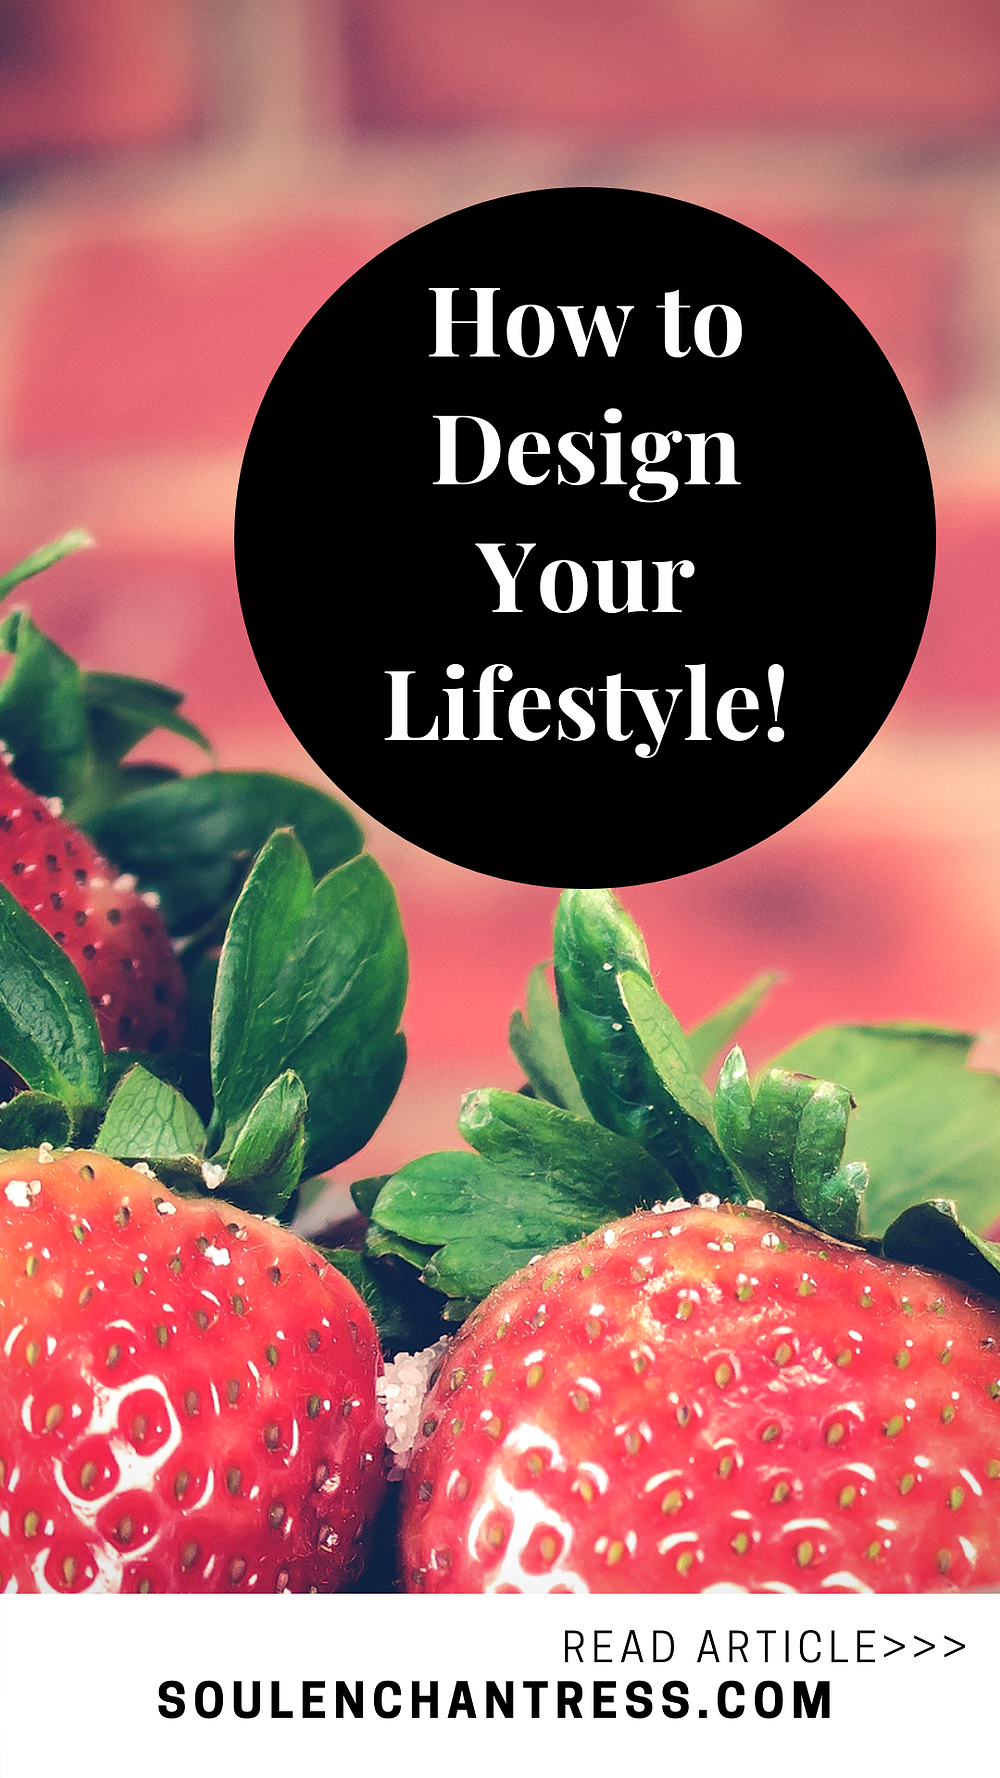 How to Design Your lifestyle, lifestyle design, soul enchantress, attract your desires